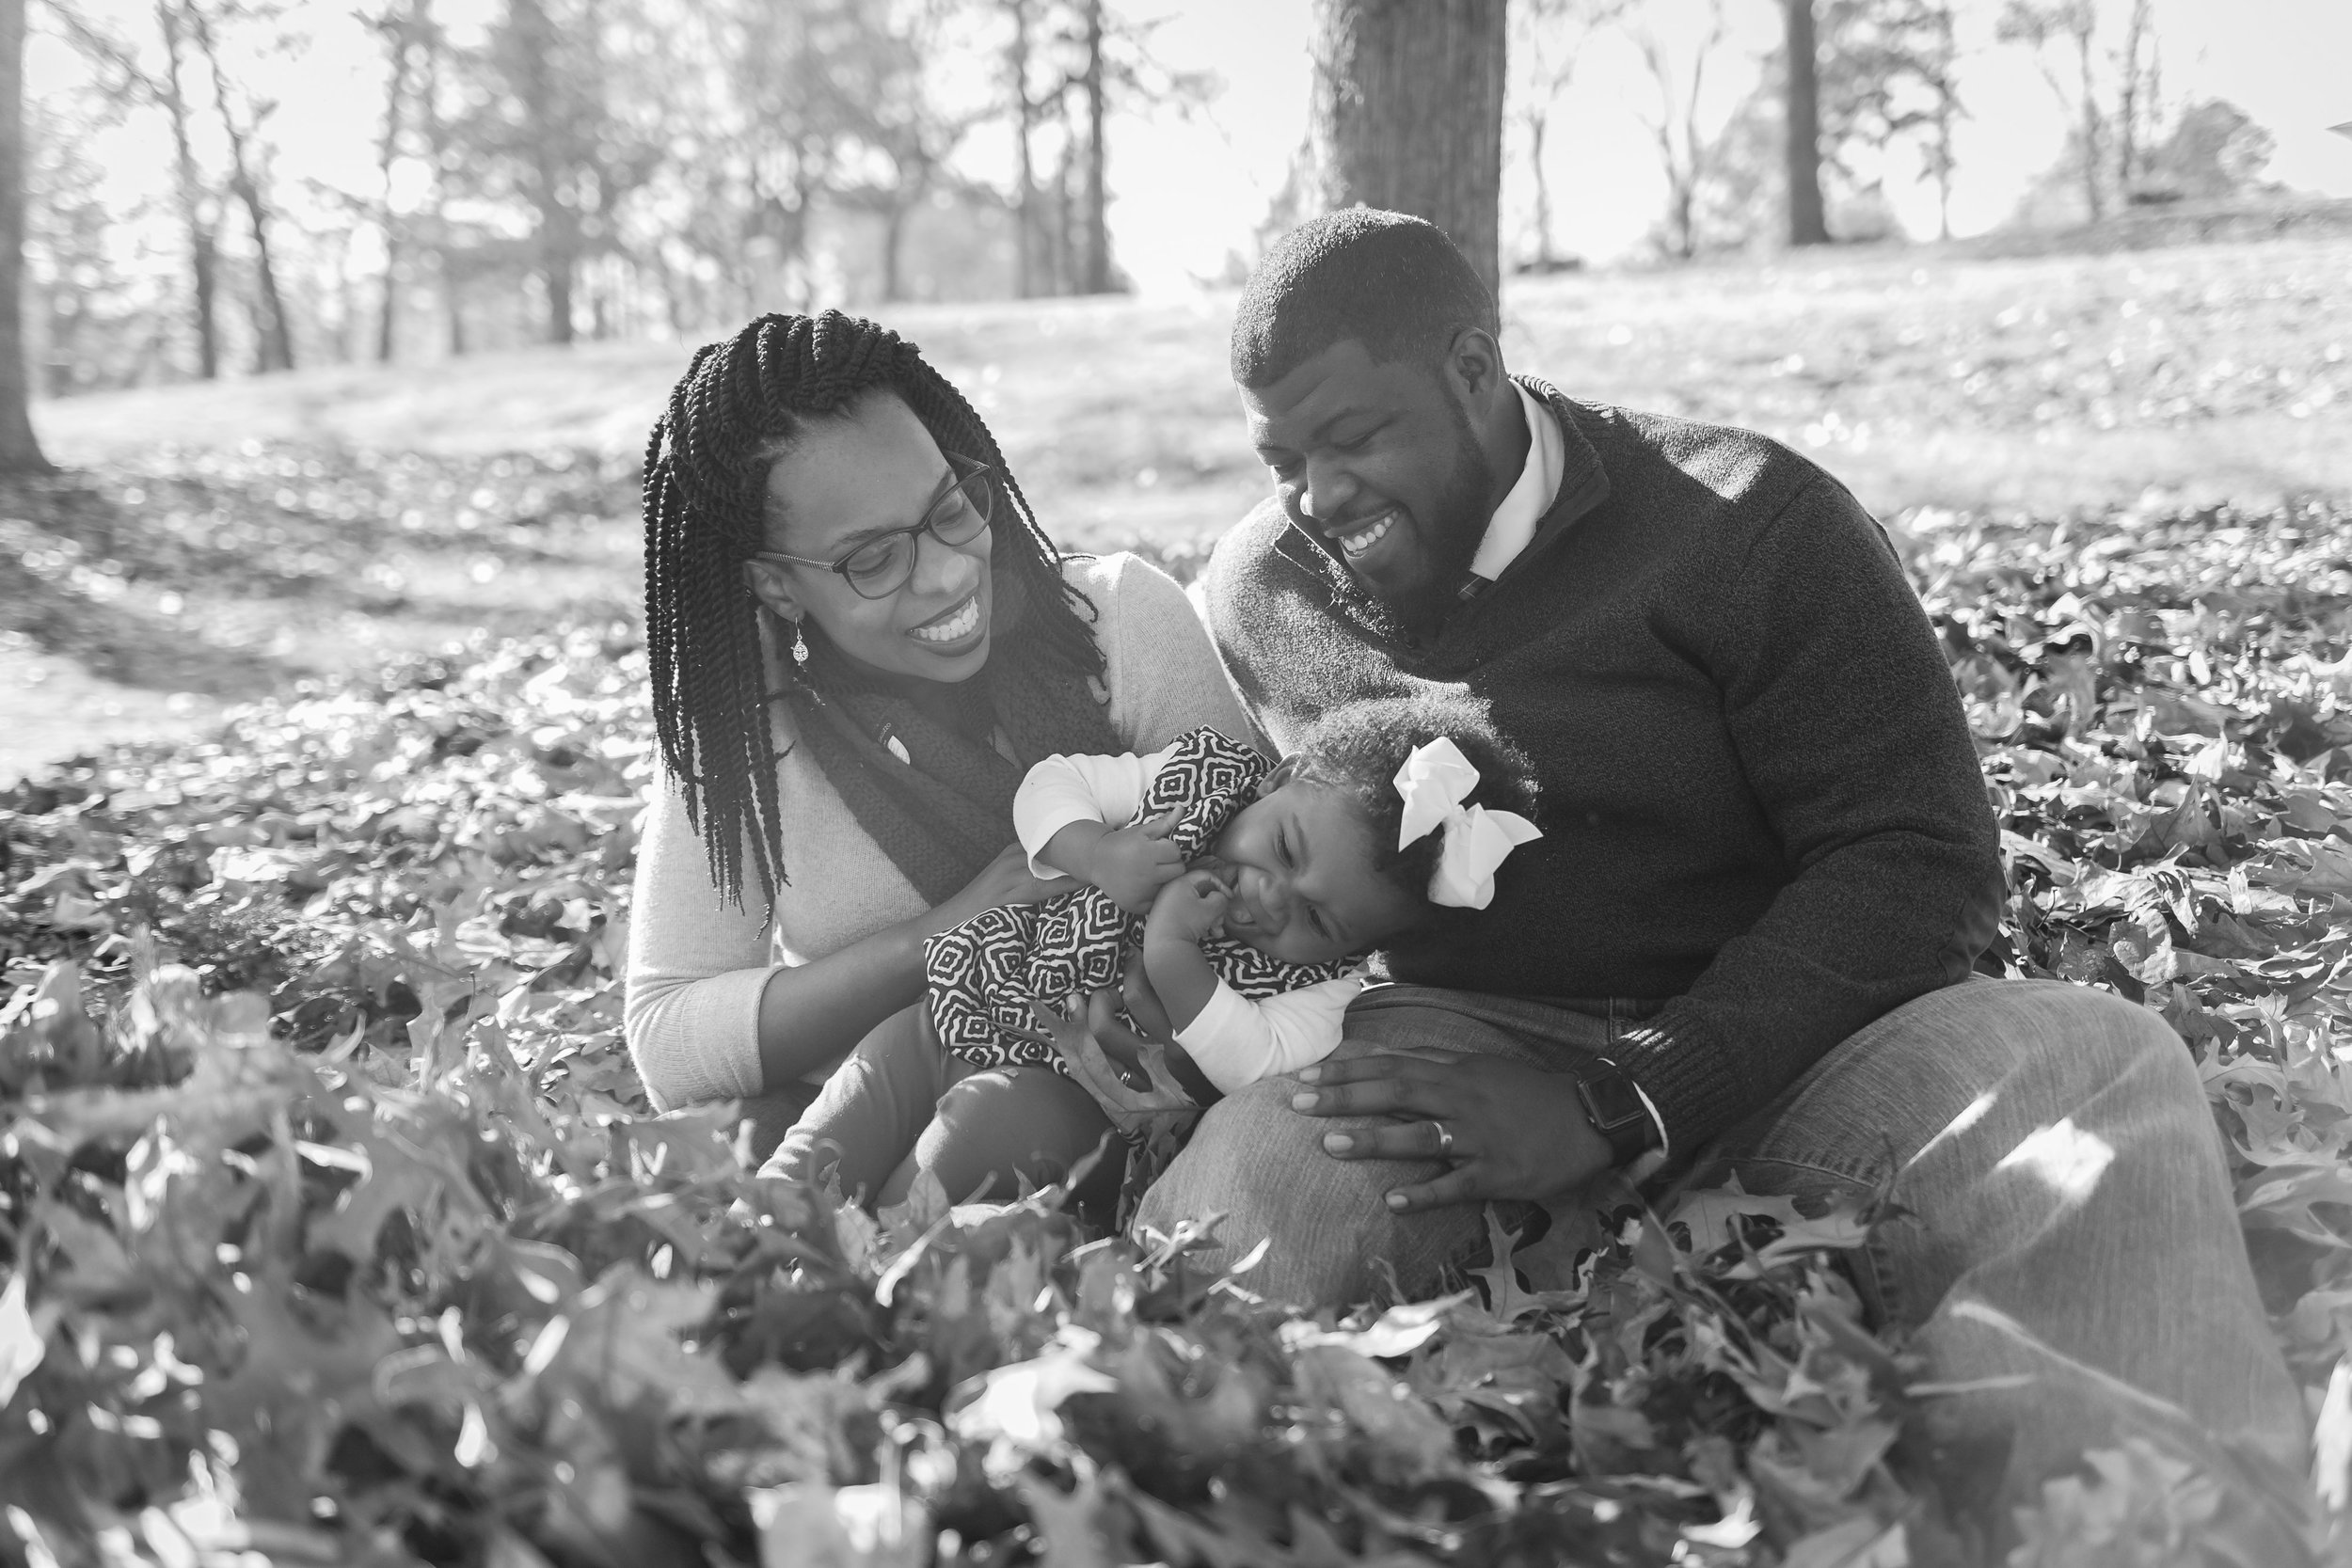 My Family - Captured by Rebecca Finley - December, 2017